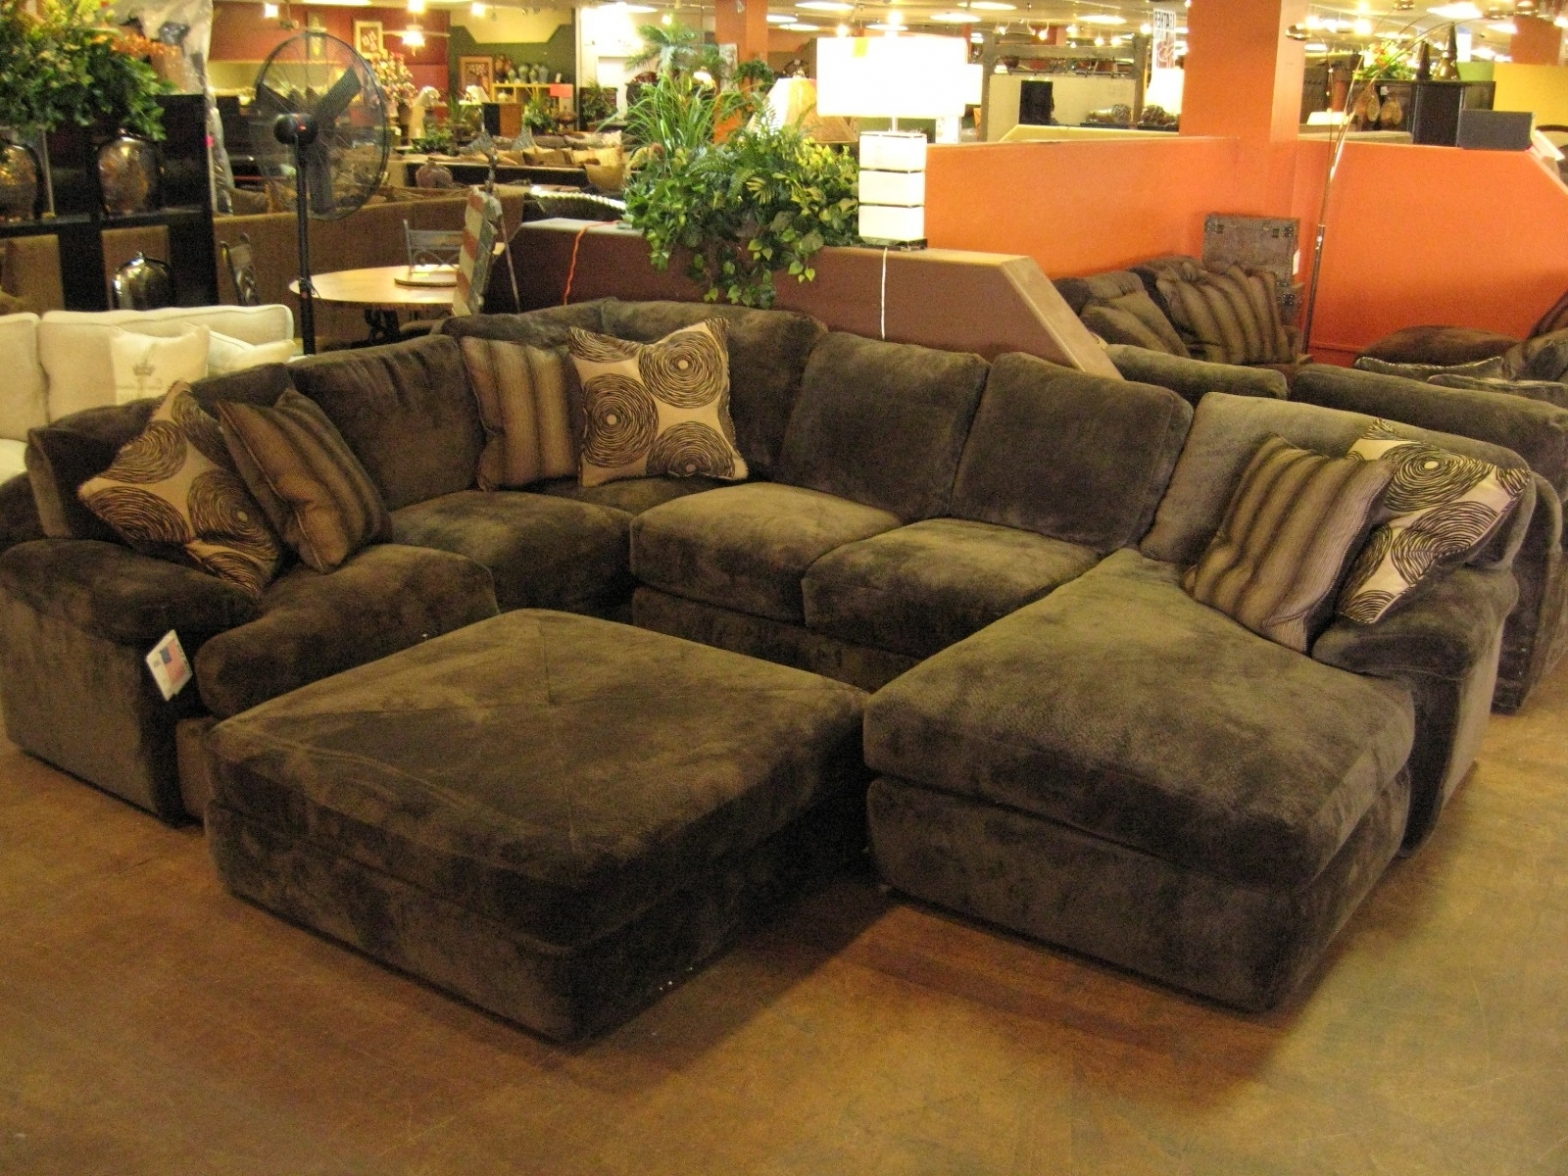 Most Current Sectional Sofas At Amazon Pertaining To Furniture: Awesome Amazon Sectional Sofas 77 On The Brick (View 8 of 15)